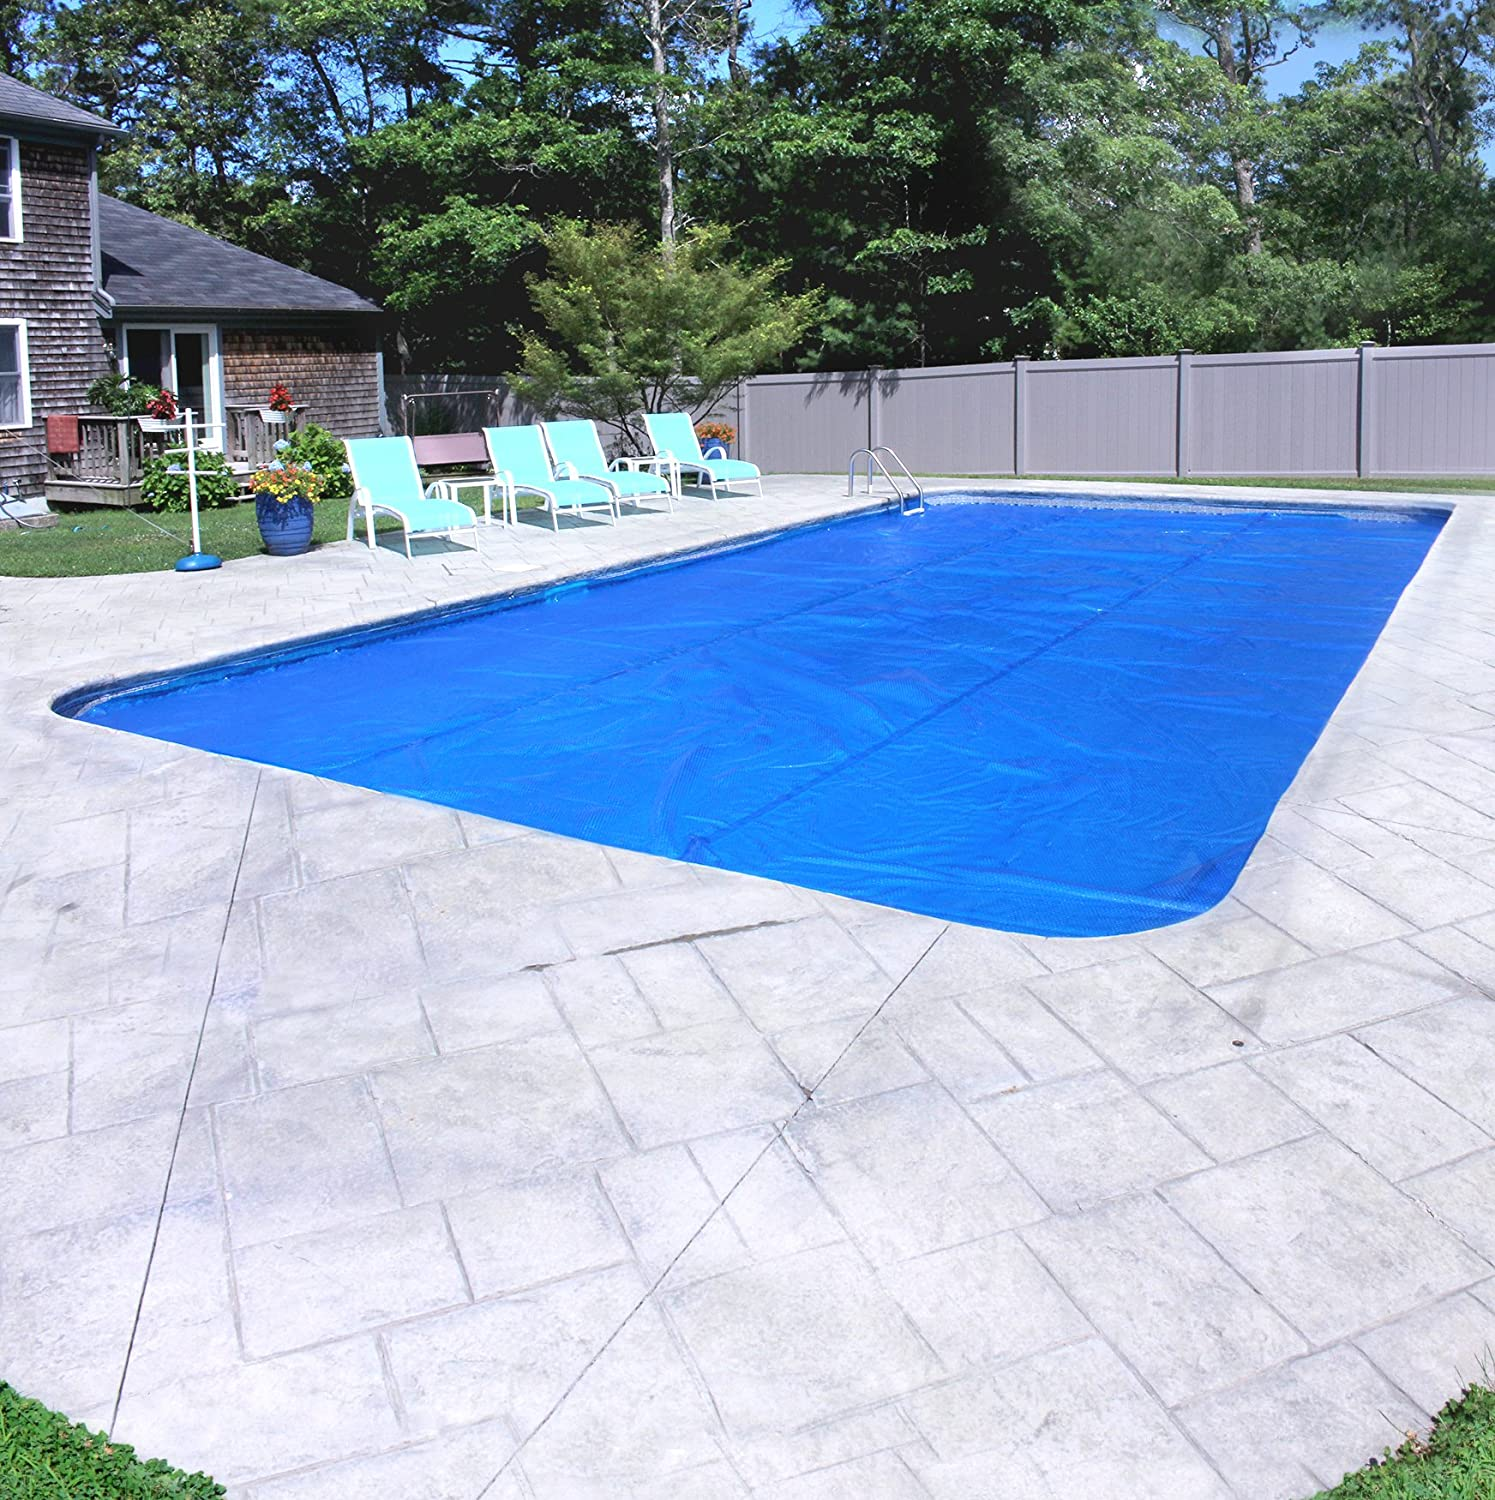 Down under blue solar cover - Above ground swimming pools tyler texas ...